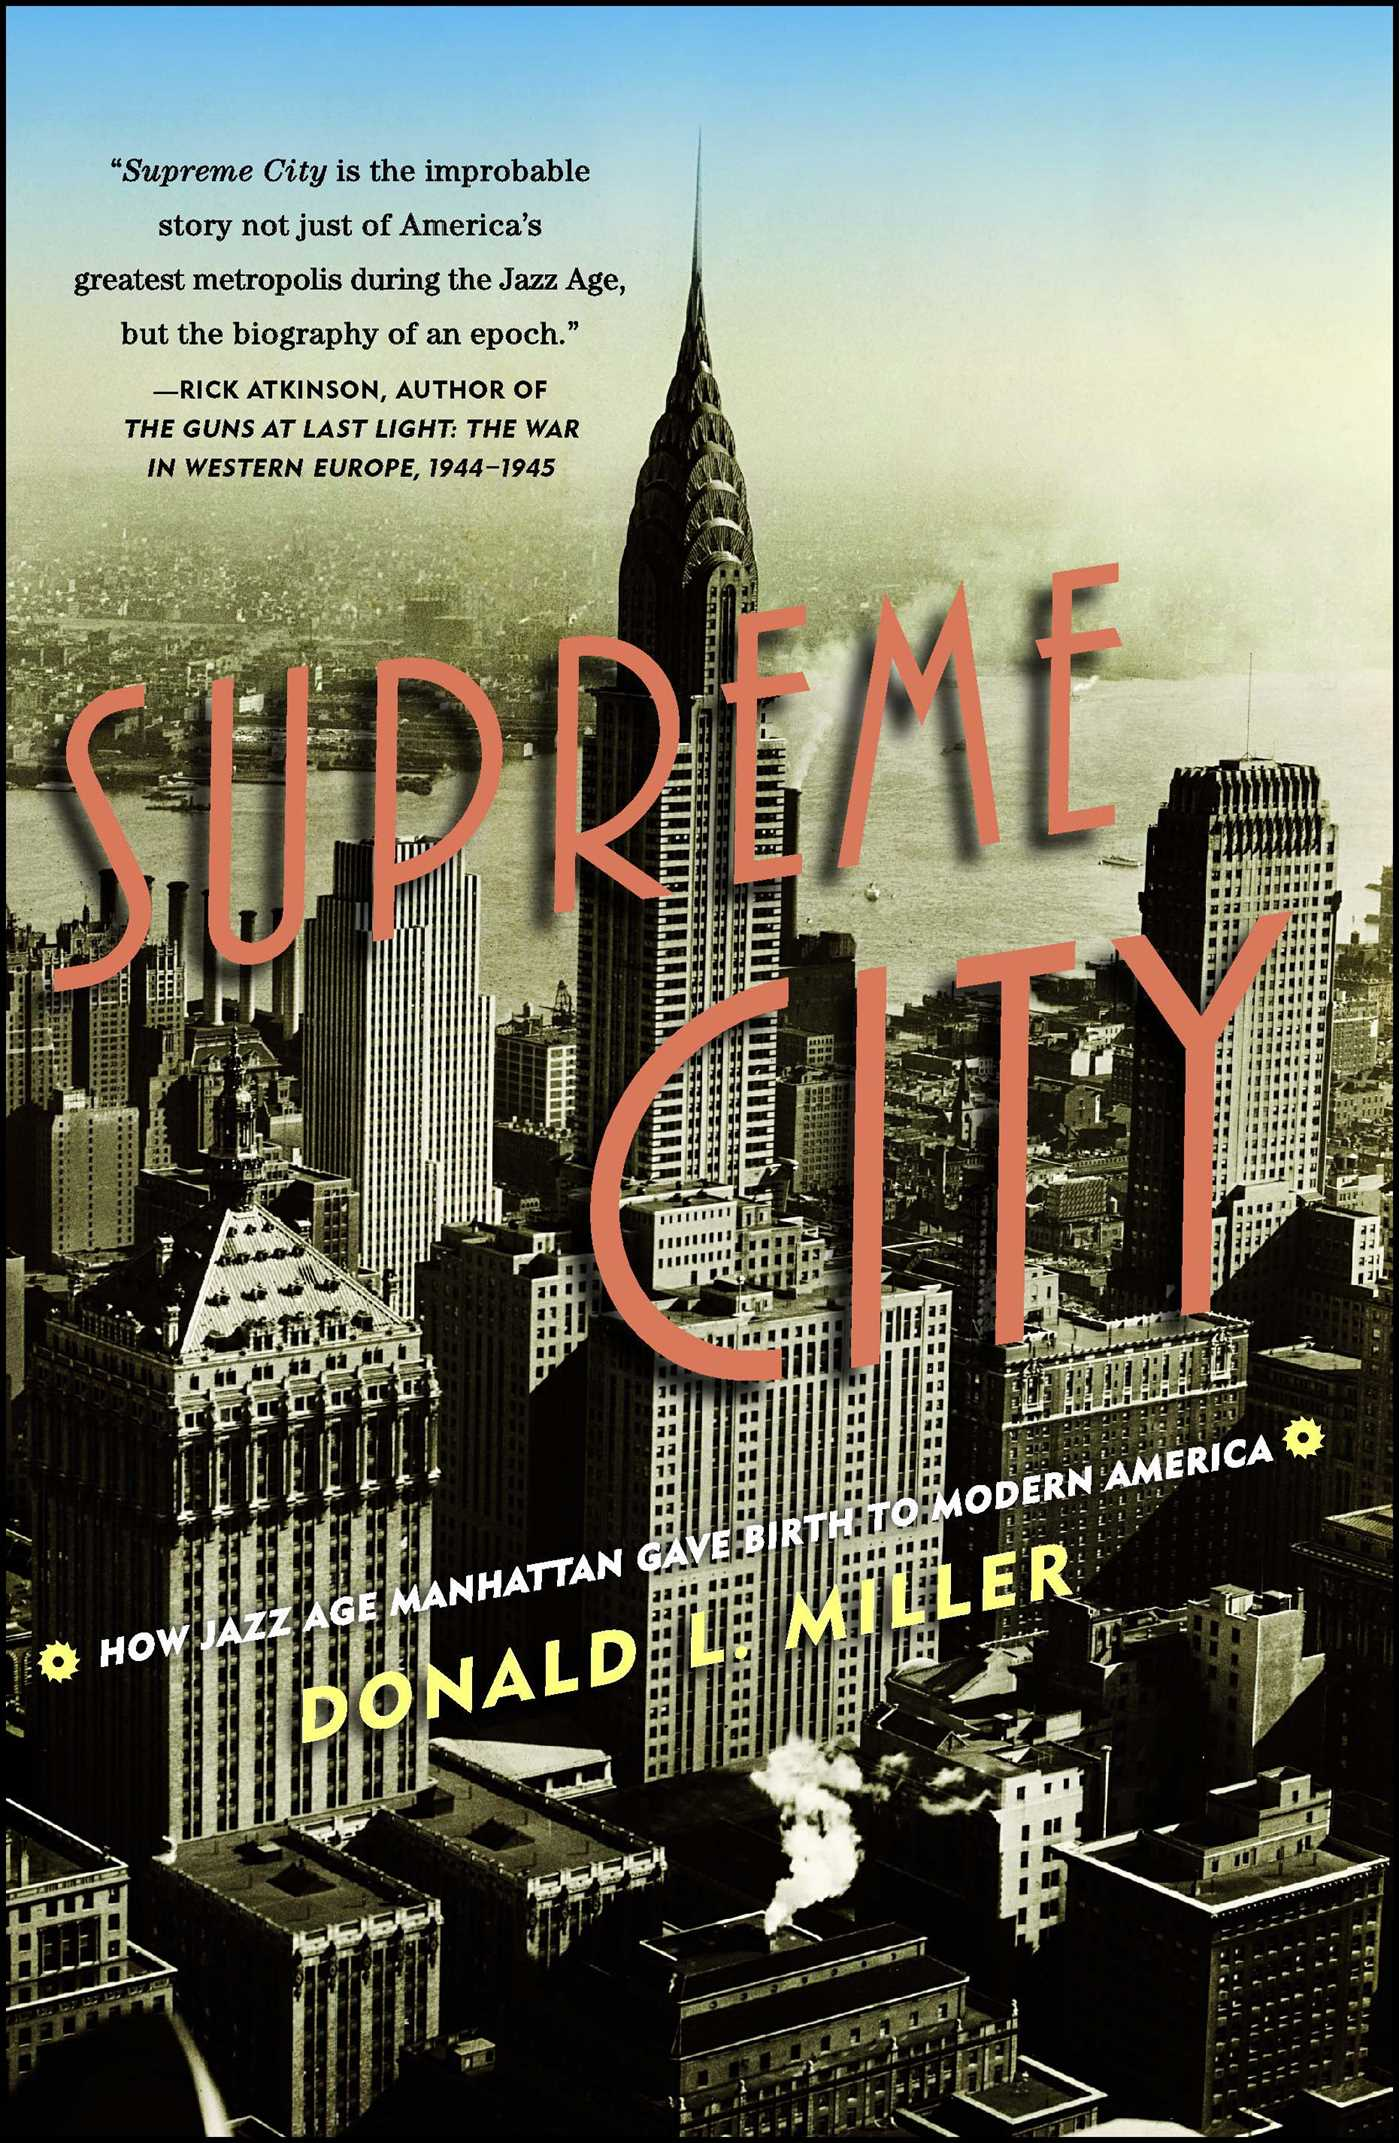 Supreme city book by donald l miller official publisher page how jazz age manhattan gave birth to modern america fandeluxe Images